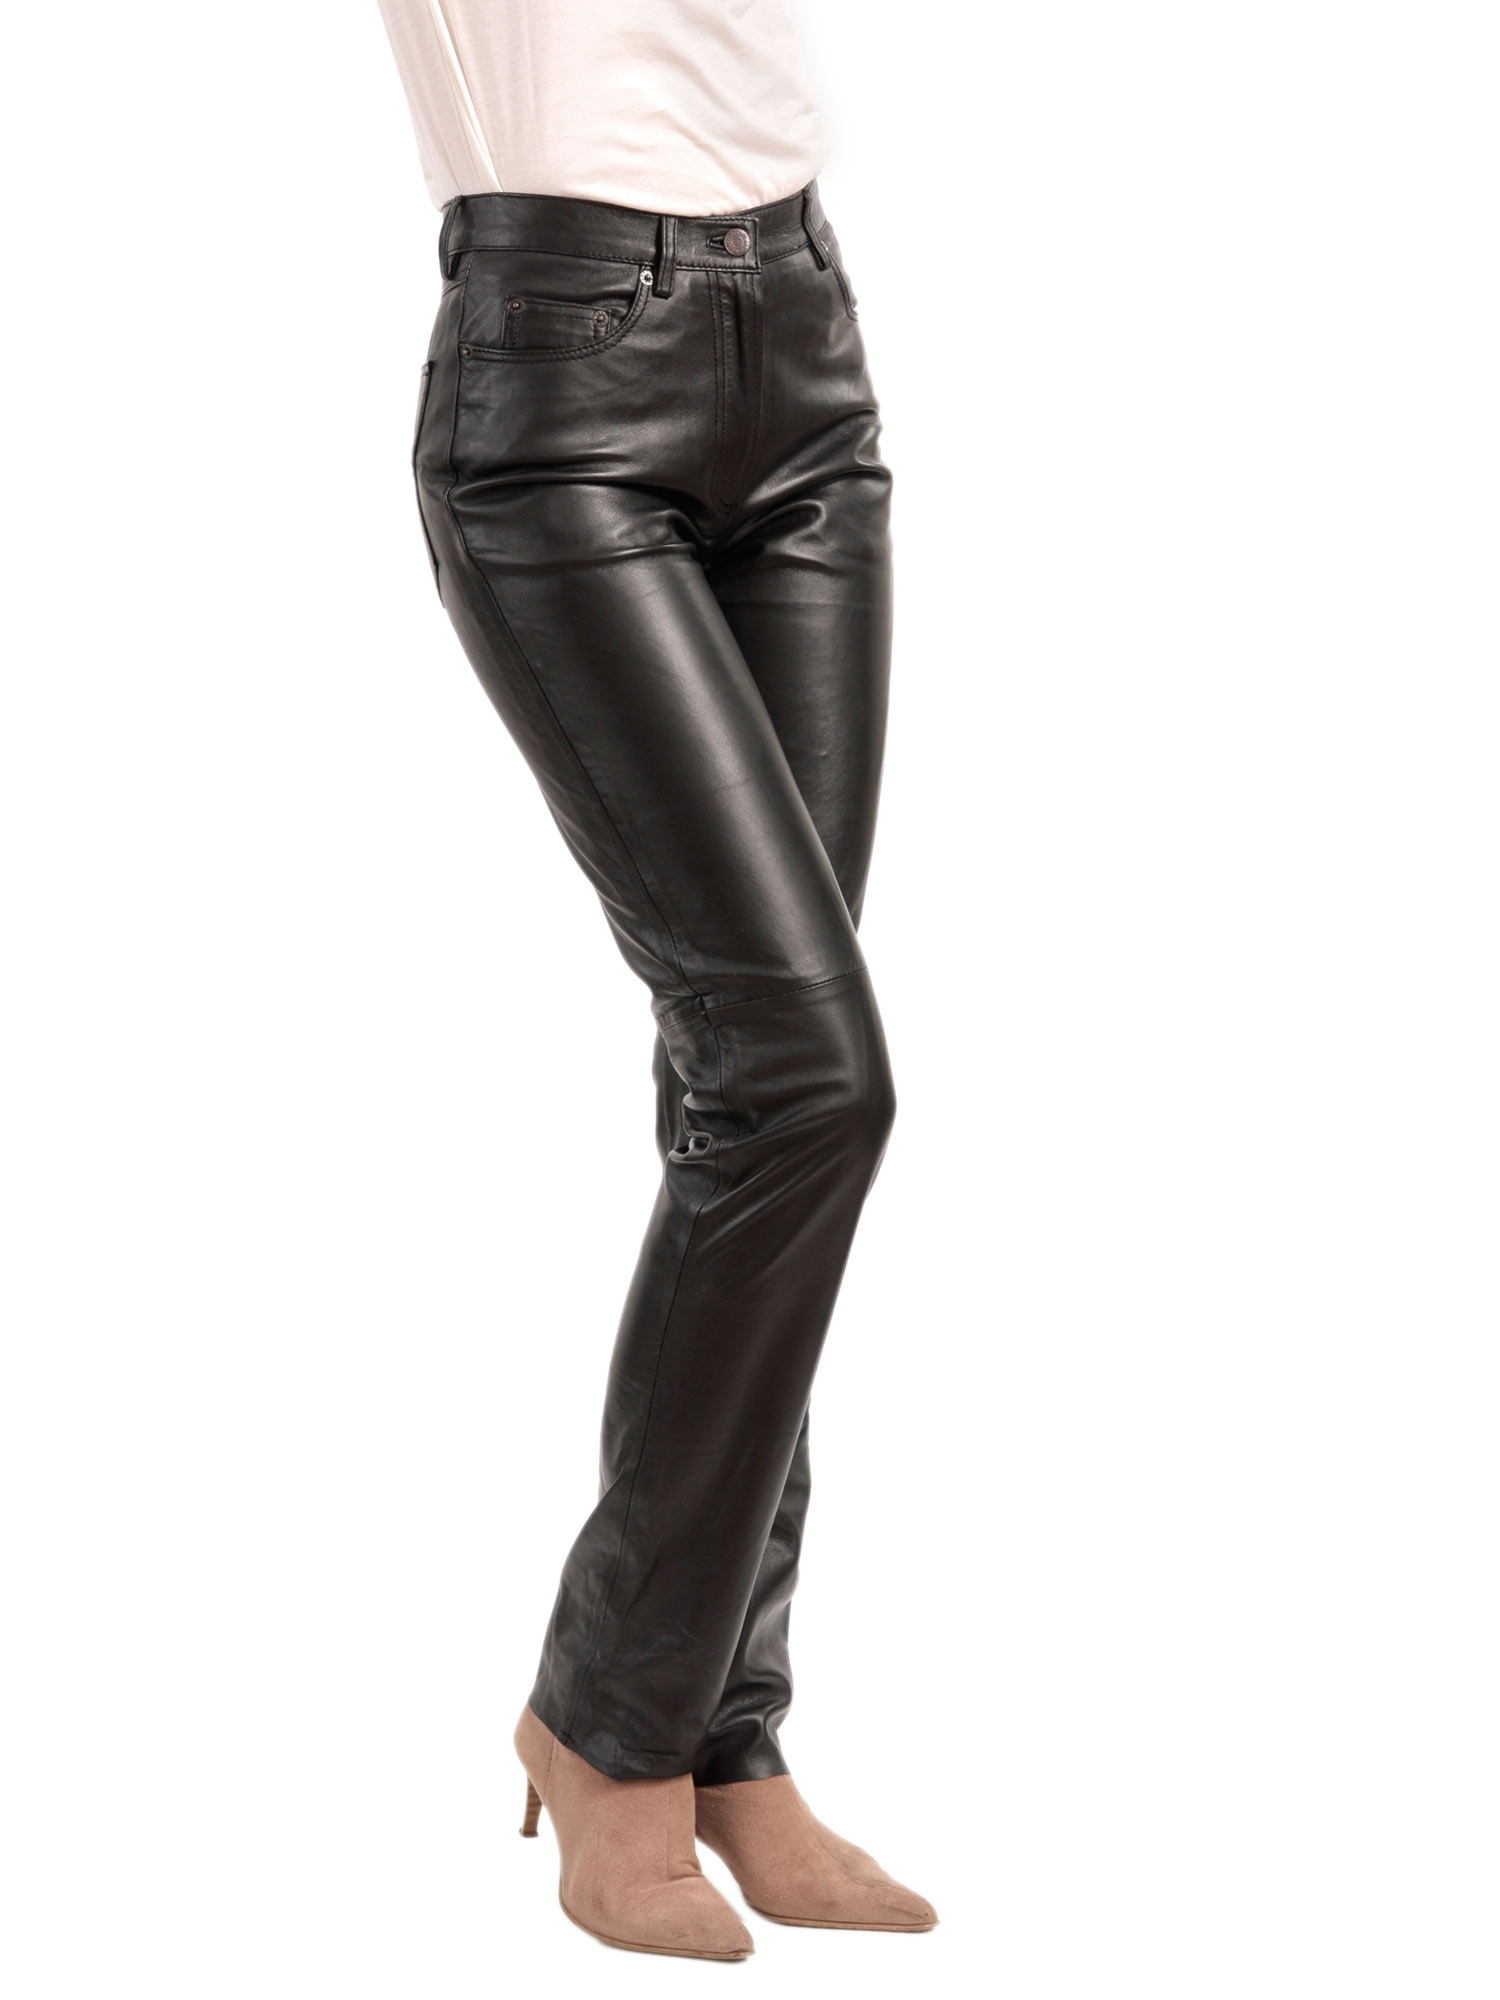 Unique This Is A Stretchleather Pant In Our Bestselling Verdugo Fit This Ultra Skinny 100% Leather Pant Features Diagonal Knee Seams And A Front Zip Closure Designed To Elongate The Leg With Its Flawless Proportions, This Buttery Soft Leather Pant